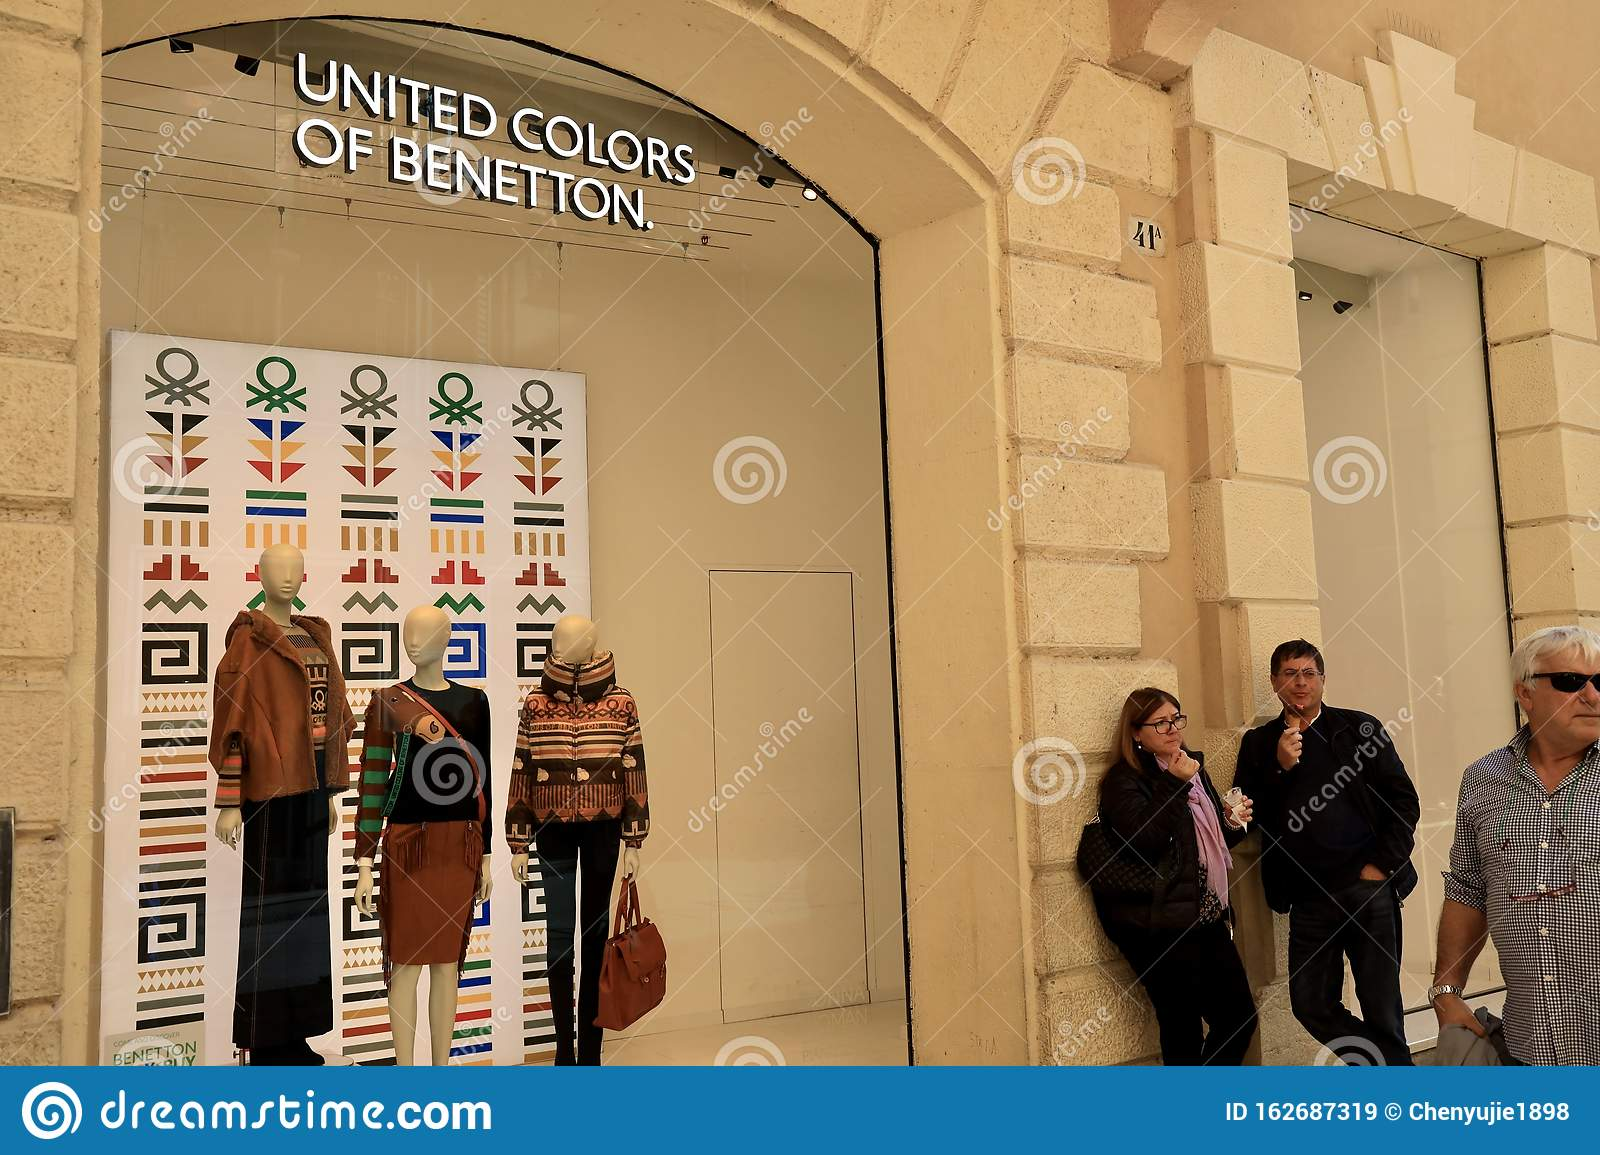 Antagonismo vacunación mano  The United Colors Of Benetton Store In Verona,Italy Editorial Stock Image -  Image of brand, united: 162687319